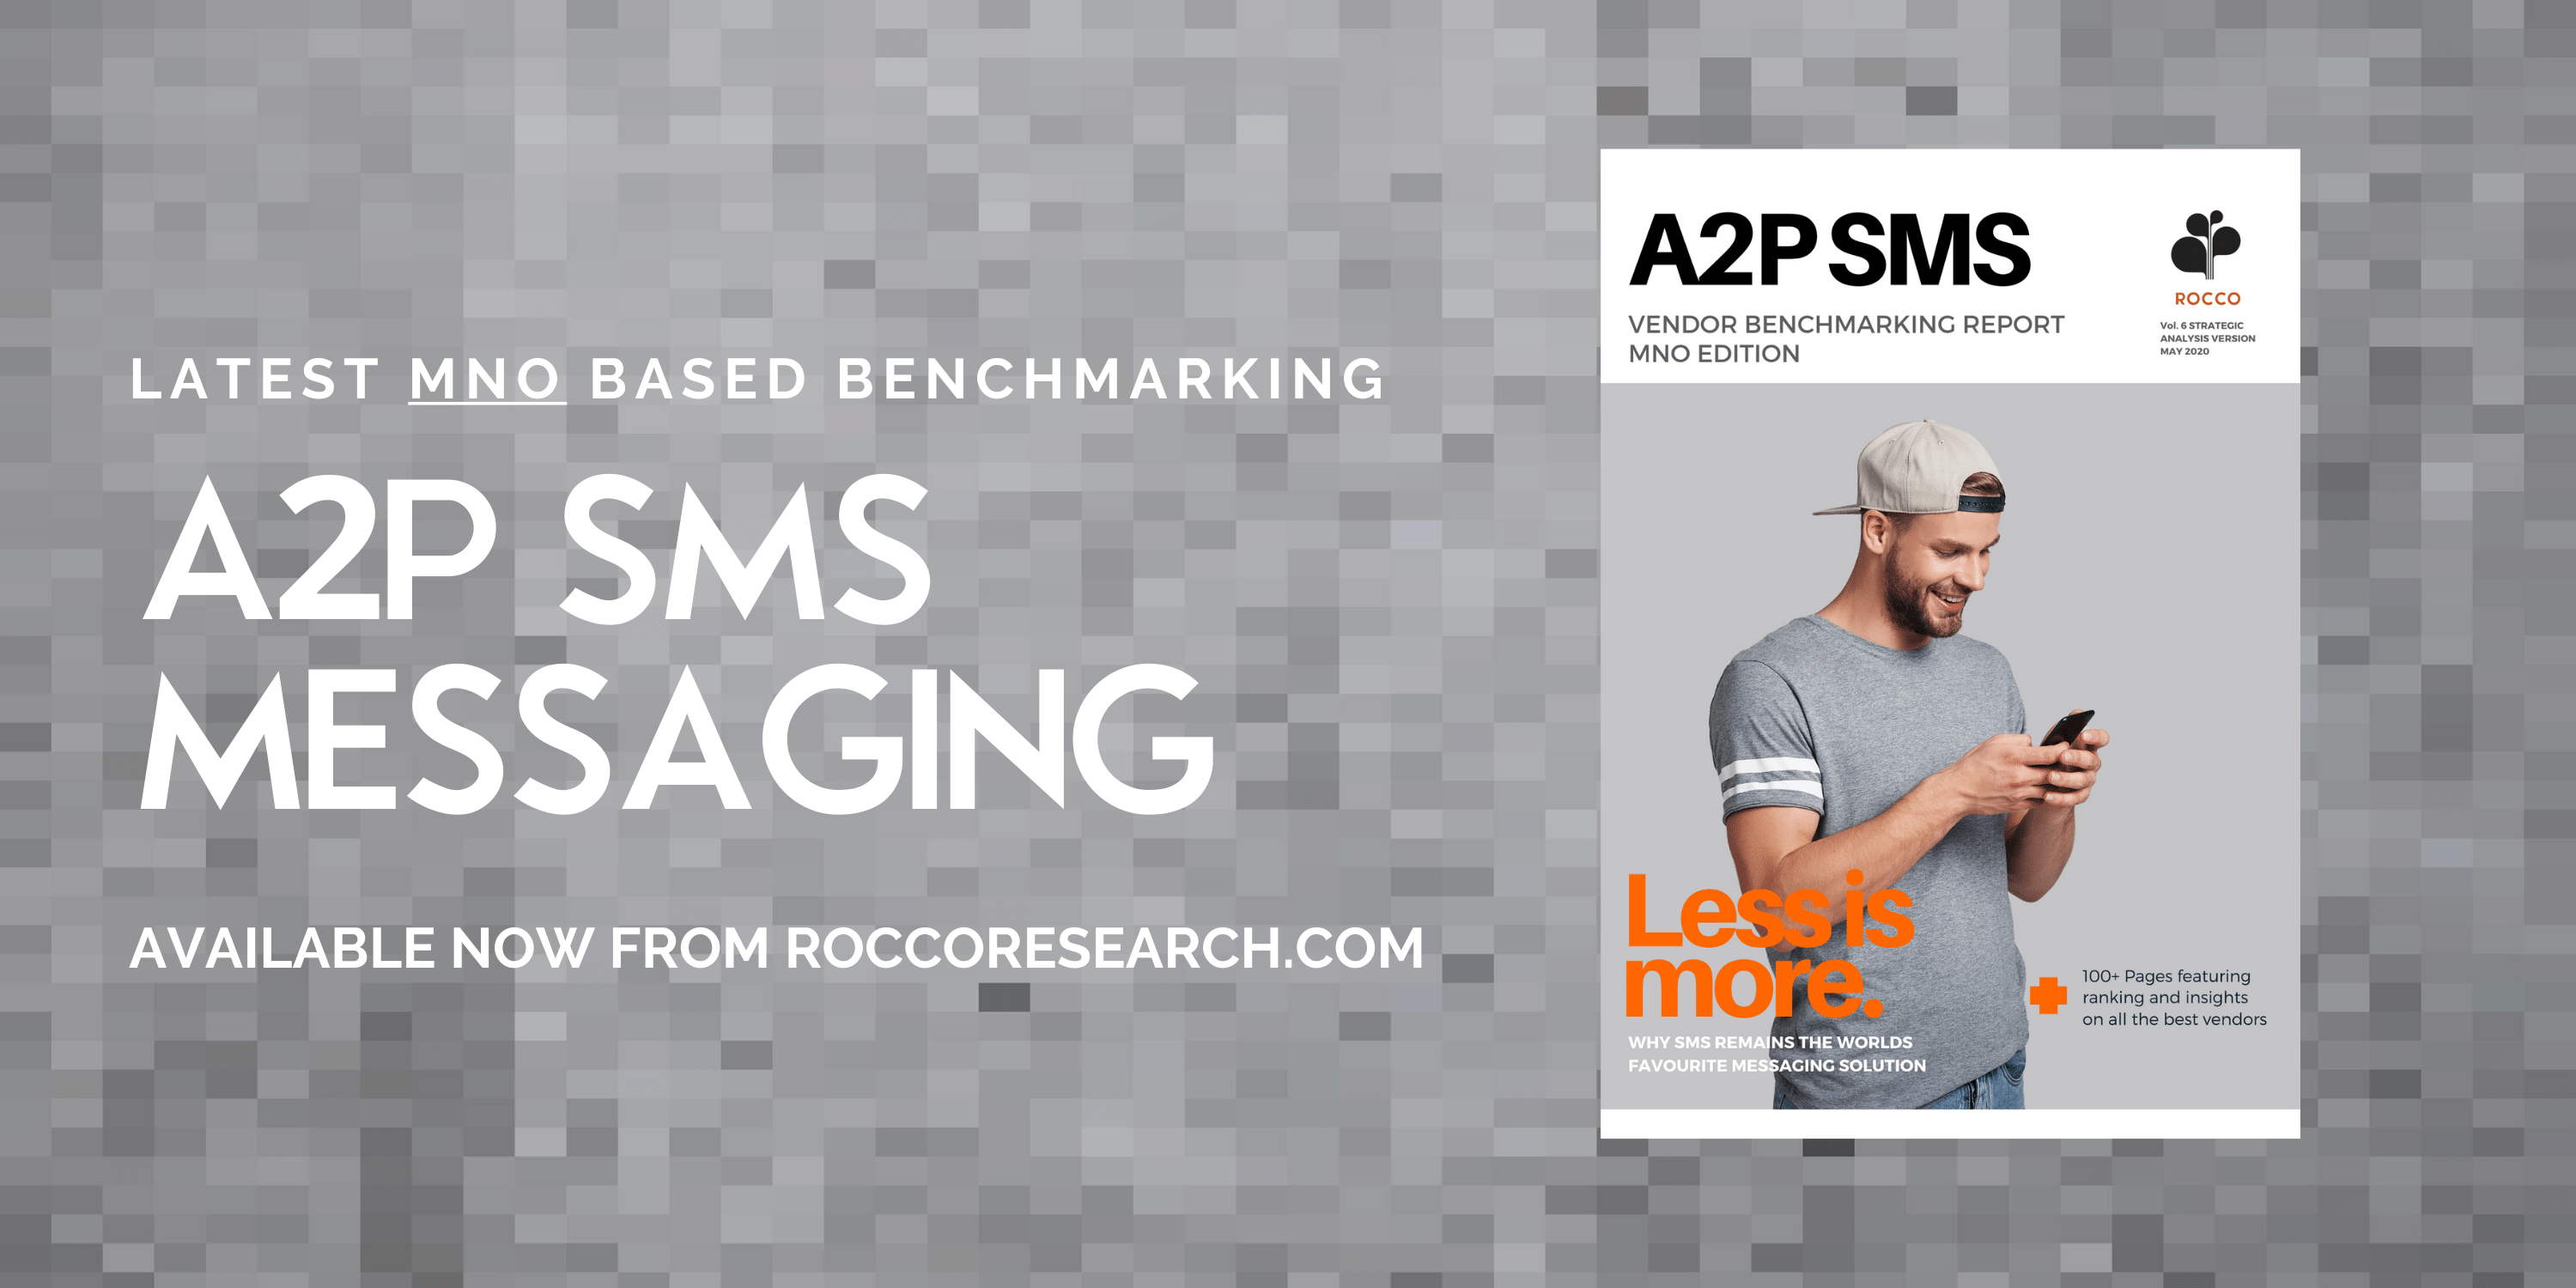 A2P SMS MESSAGING VENDOR BENCHMARKING REPORT – MNO RATED